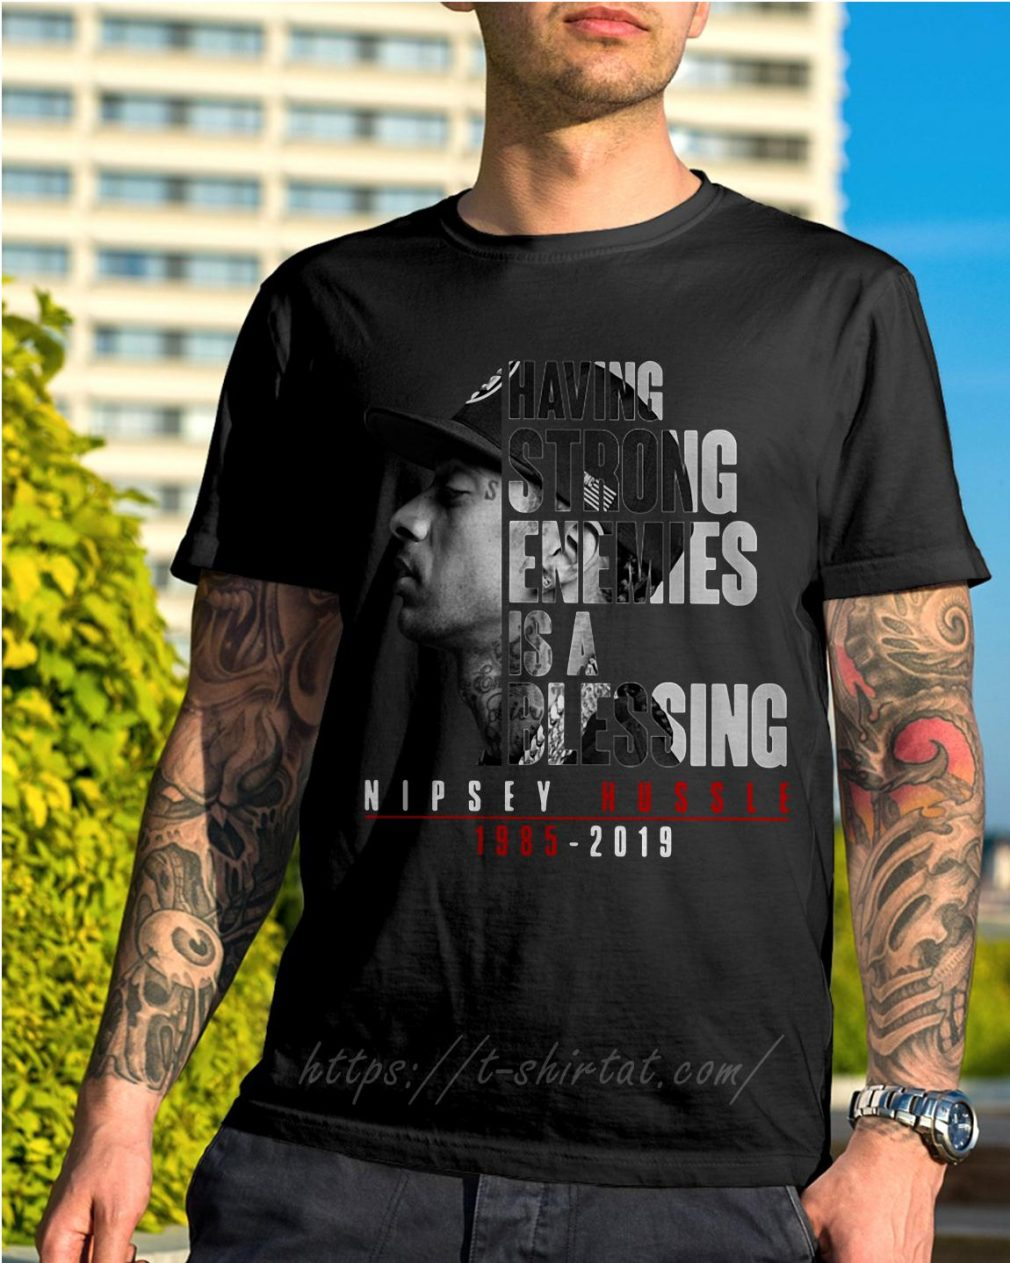 Nipsey Hussle having strong enemies is a blessing 1985-2019 shirt